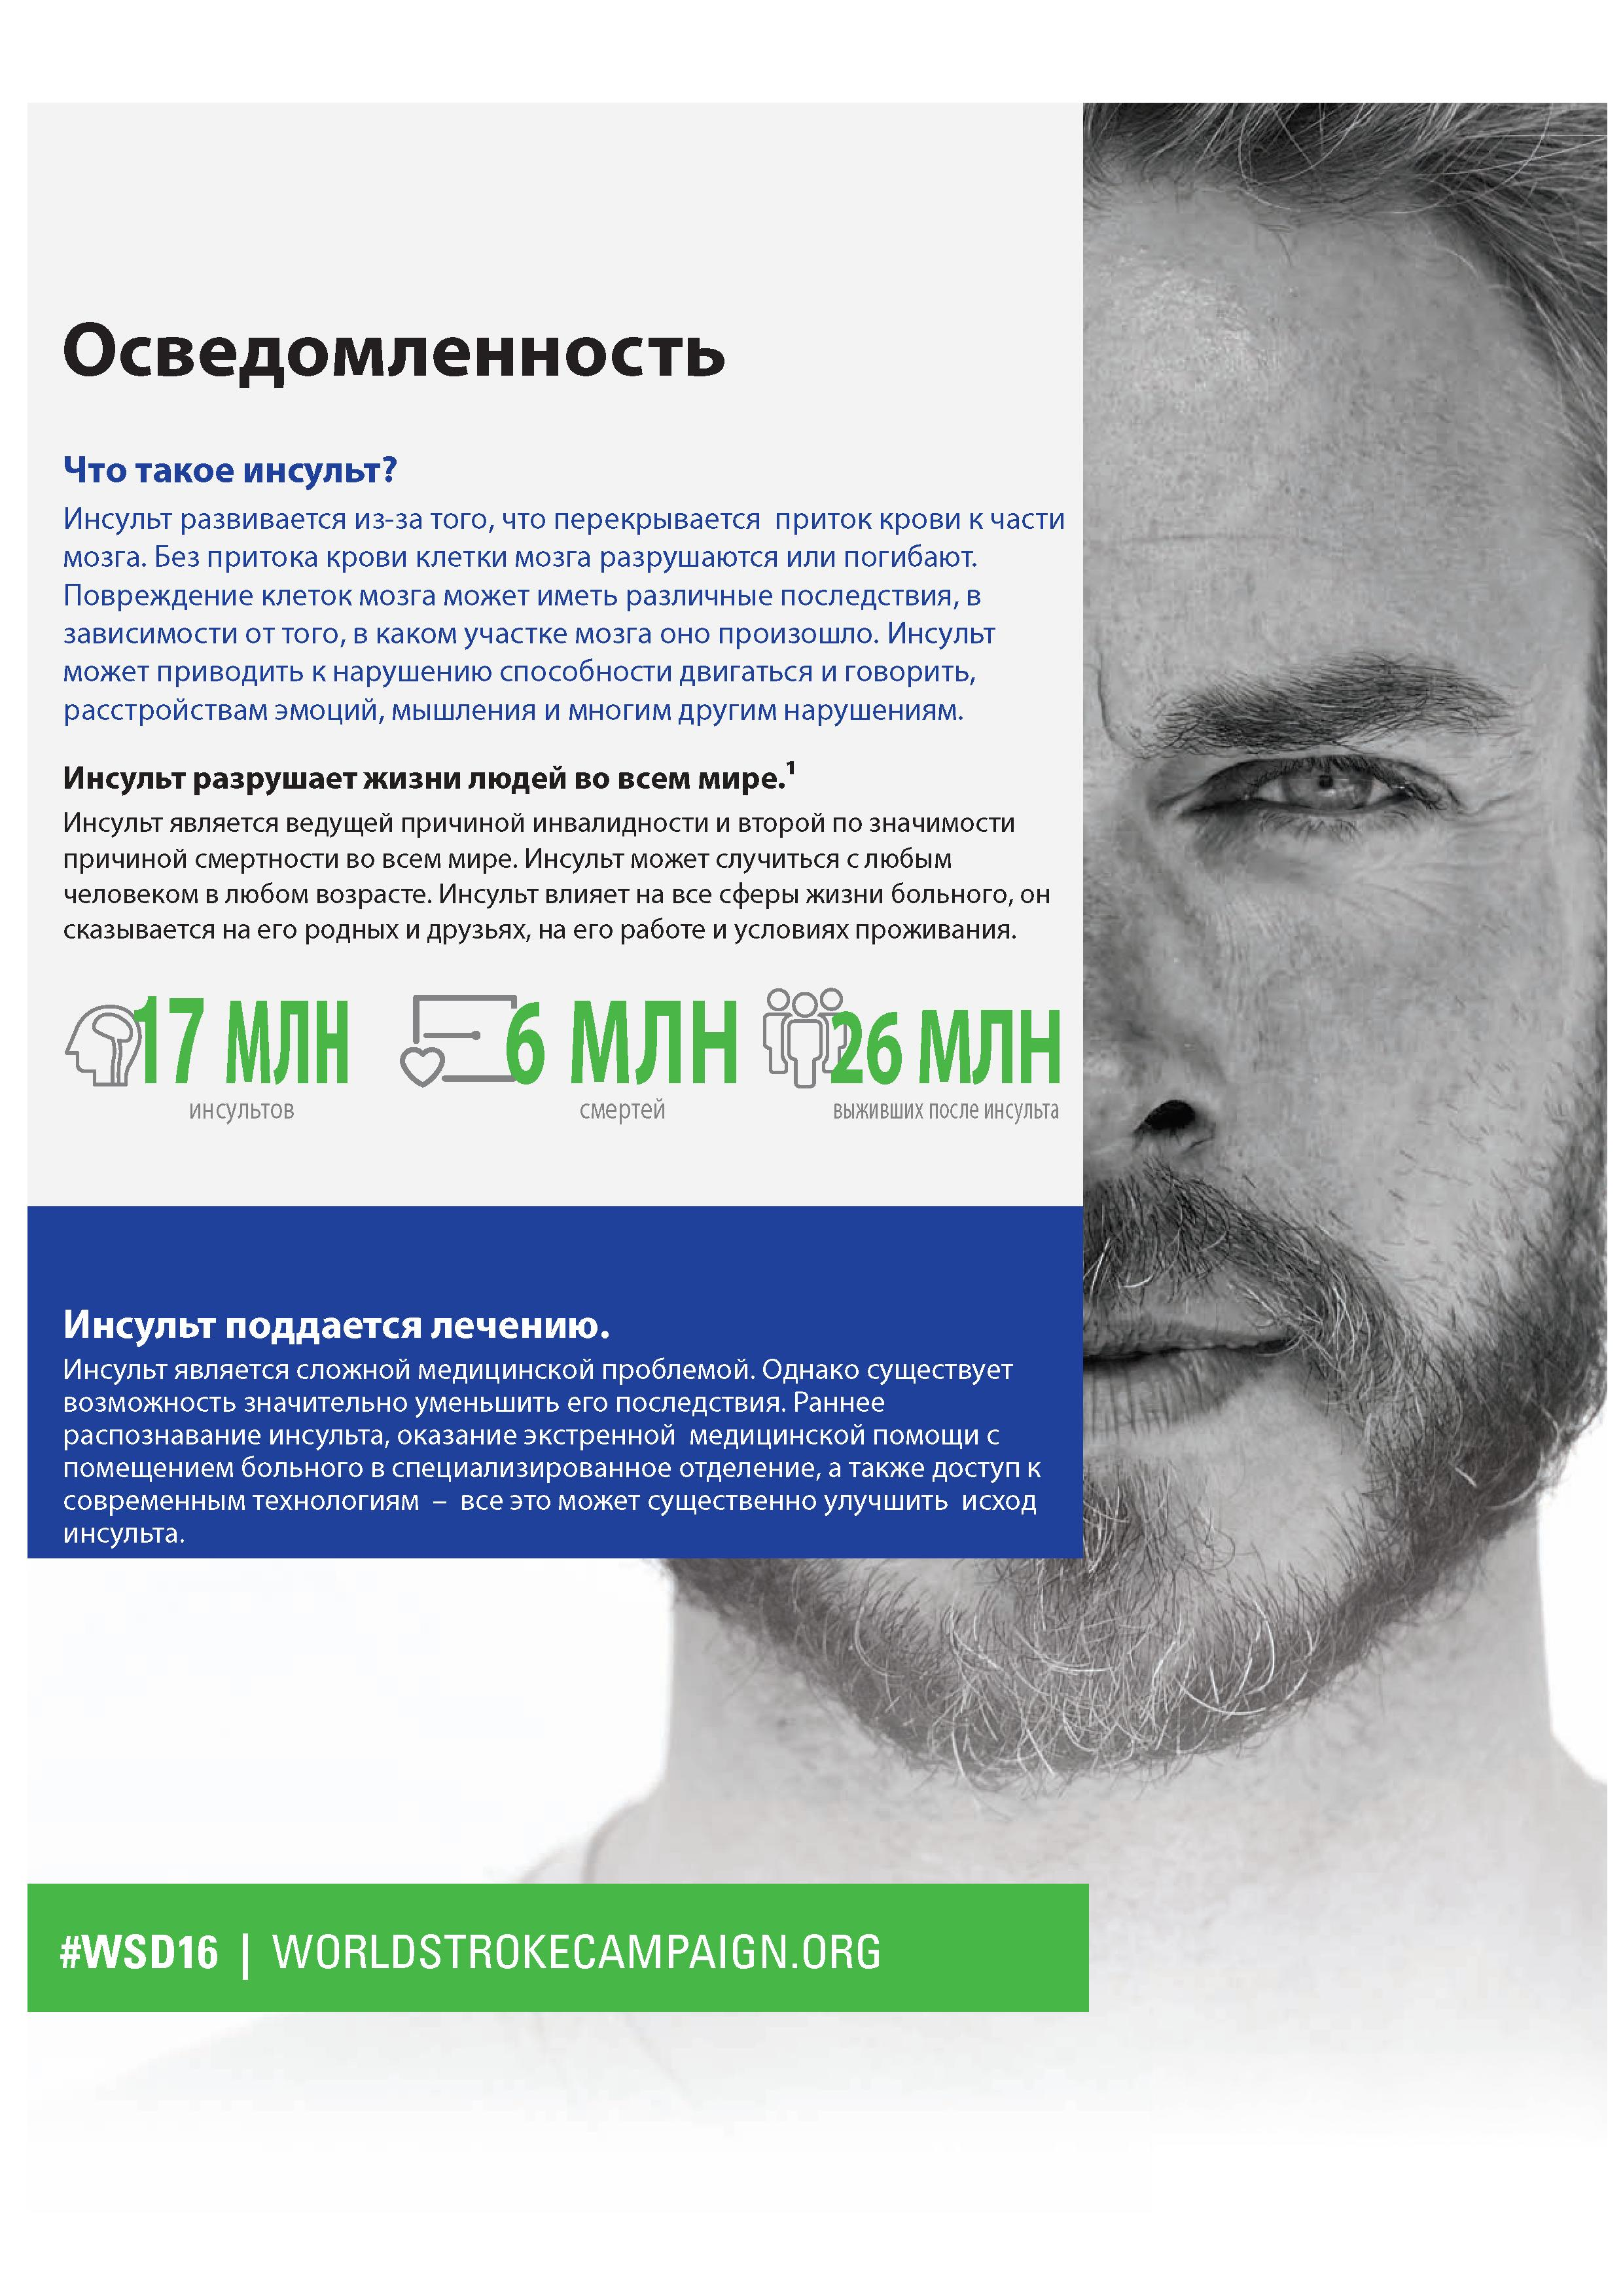 russian-world-stroke-day-2016-brochure-0002